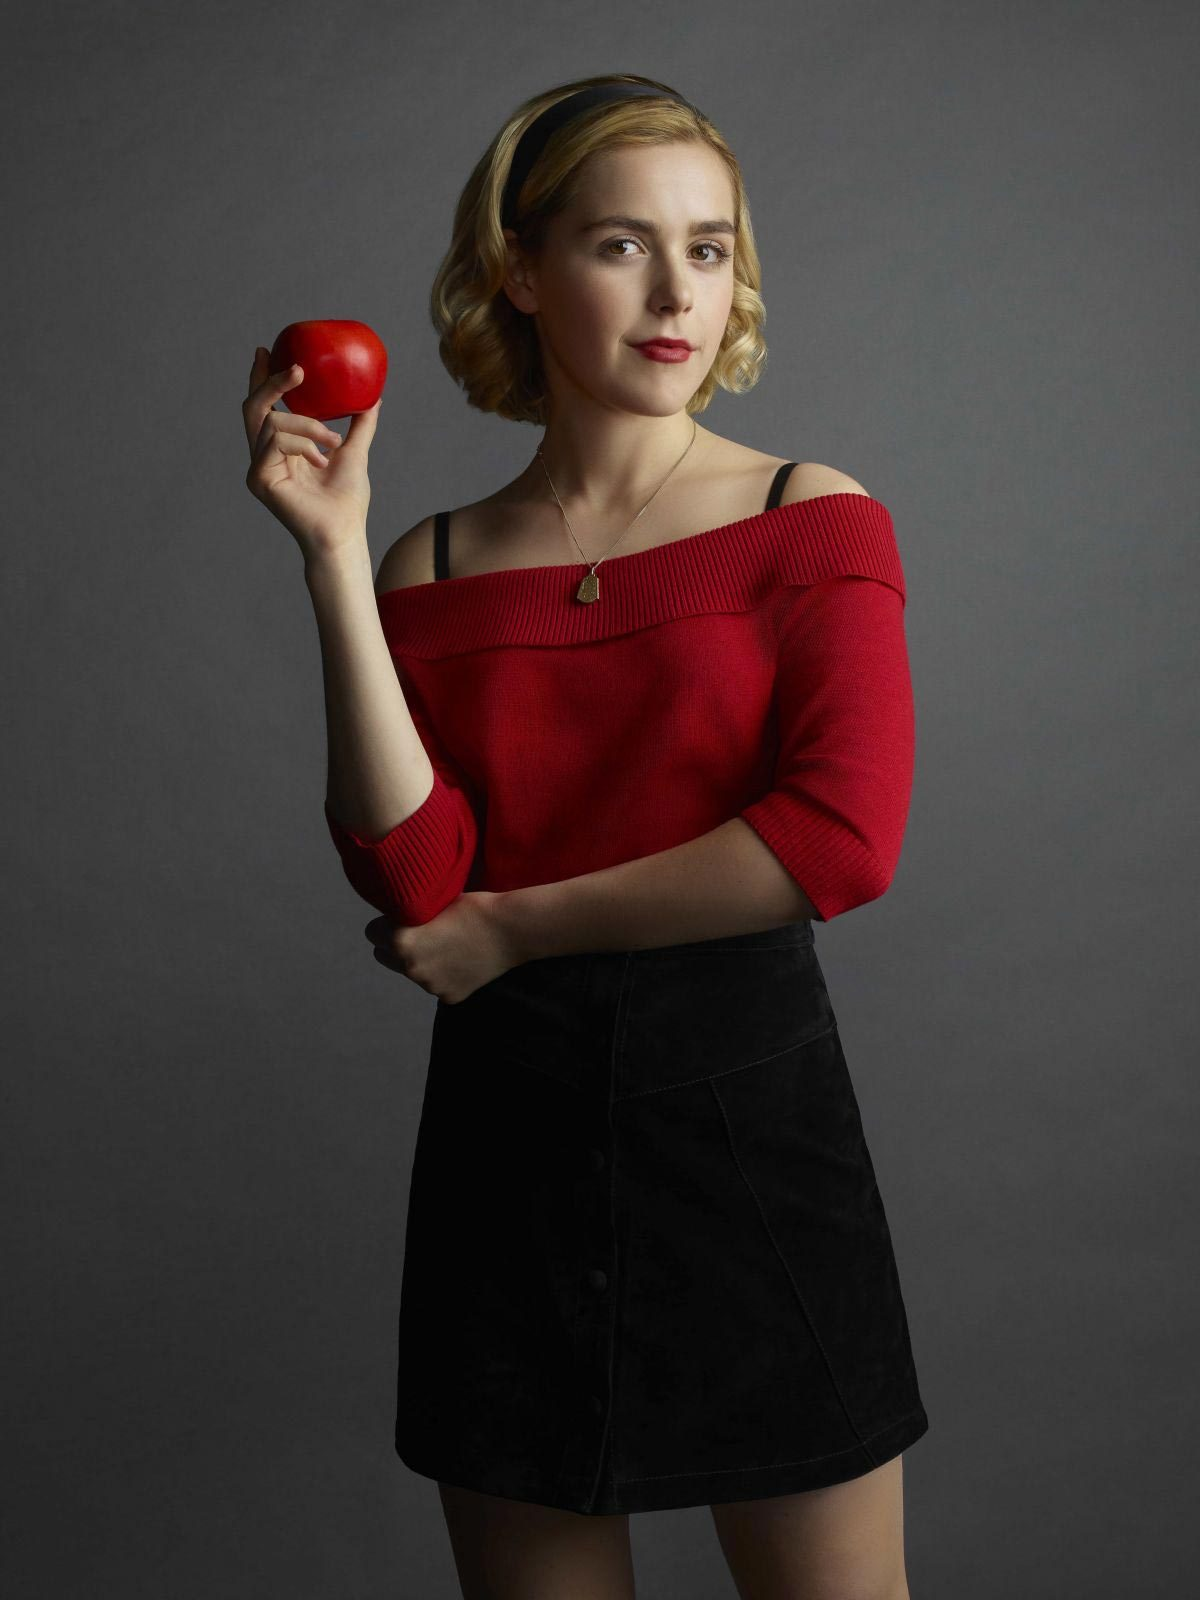 Kiernan Shipka at Chilling Adventures of Sabrina, Season 1 Posters and Promos 1